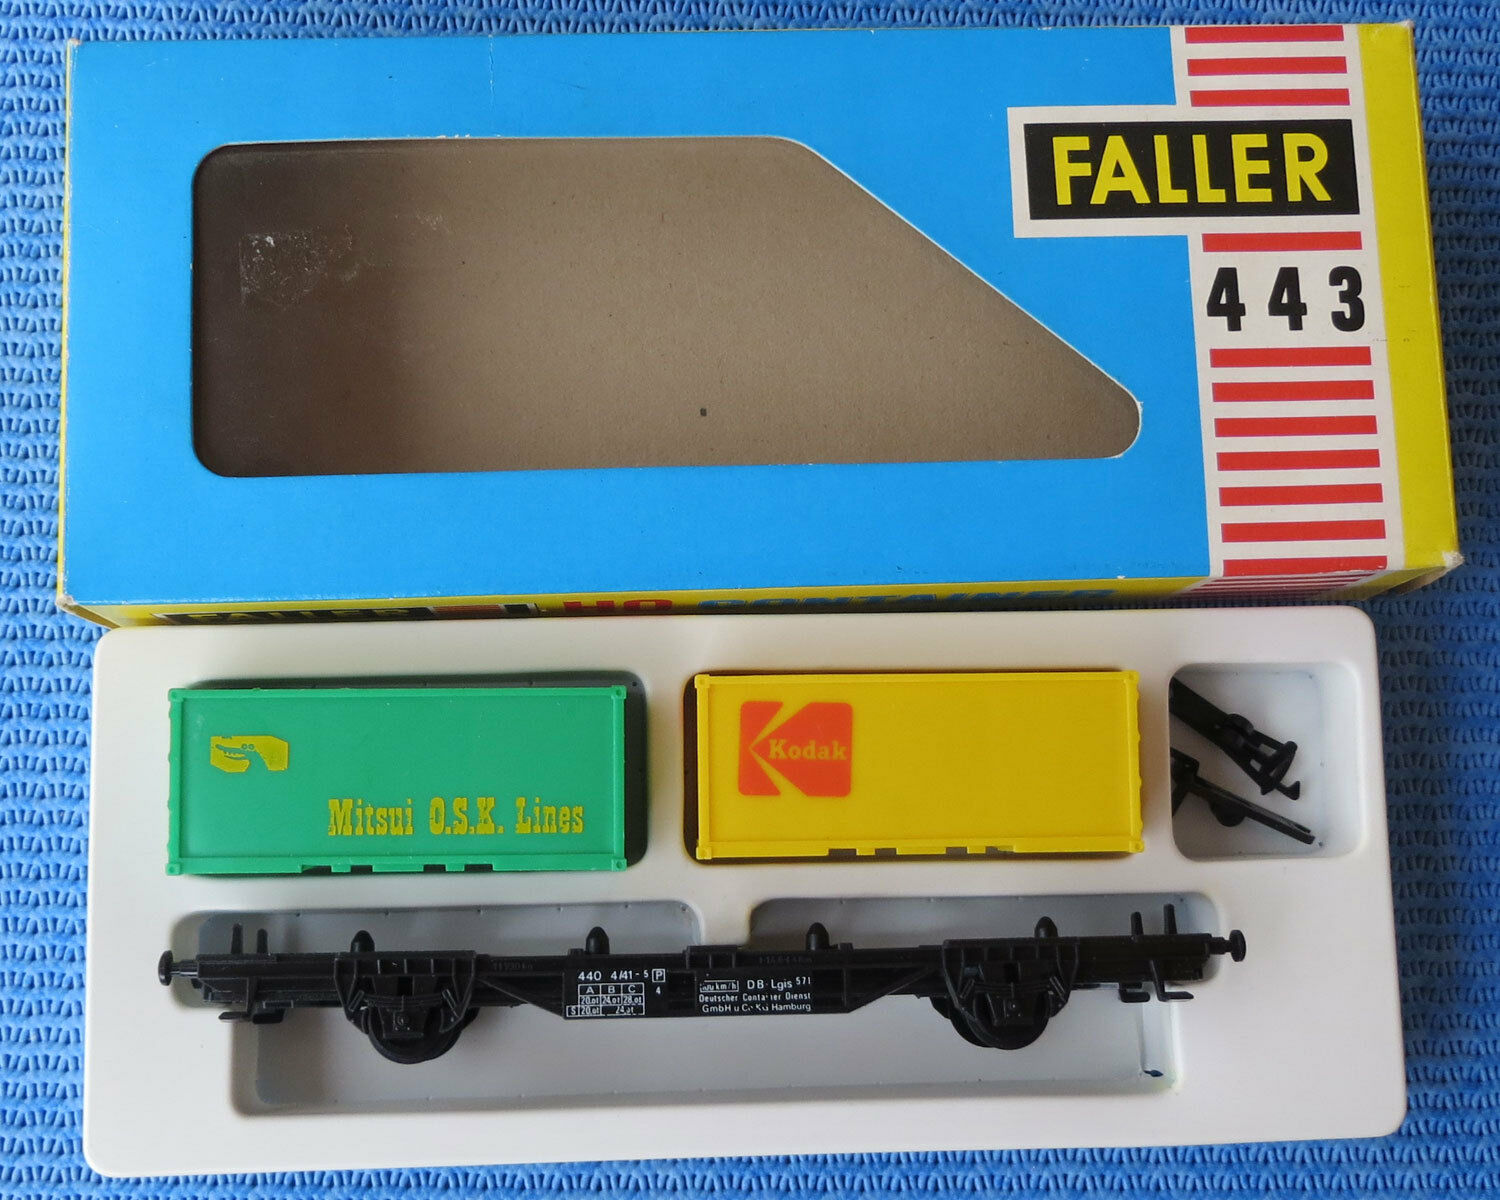 Faller Ams 443 Vagn med container